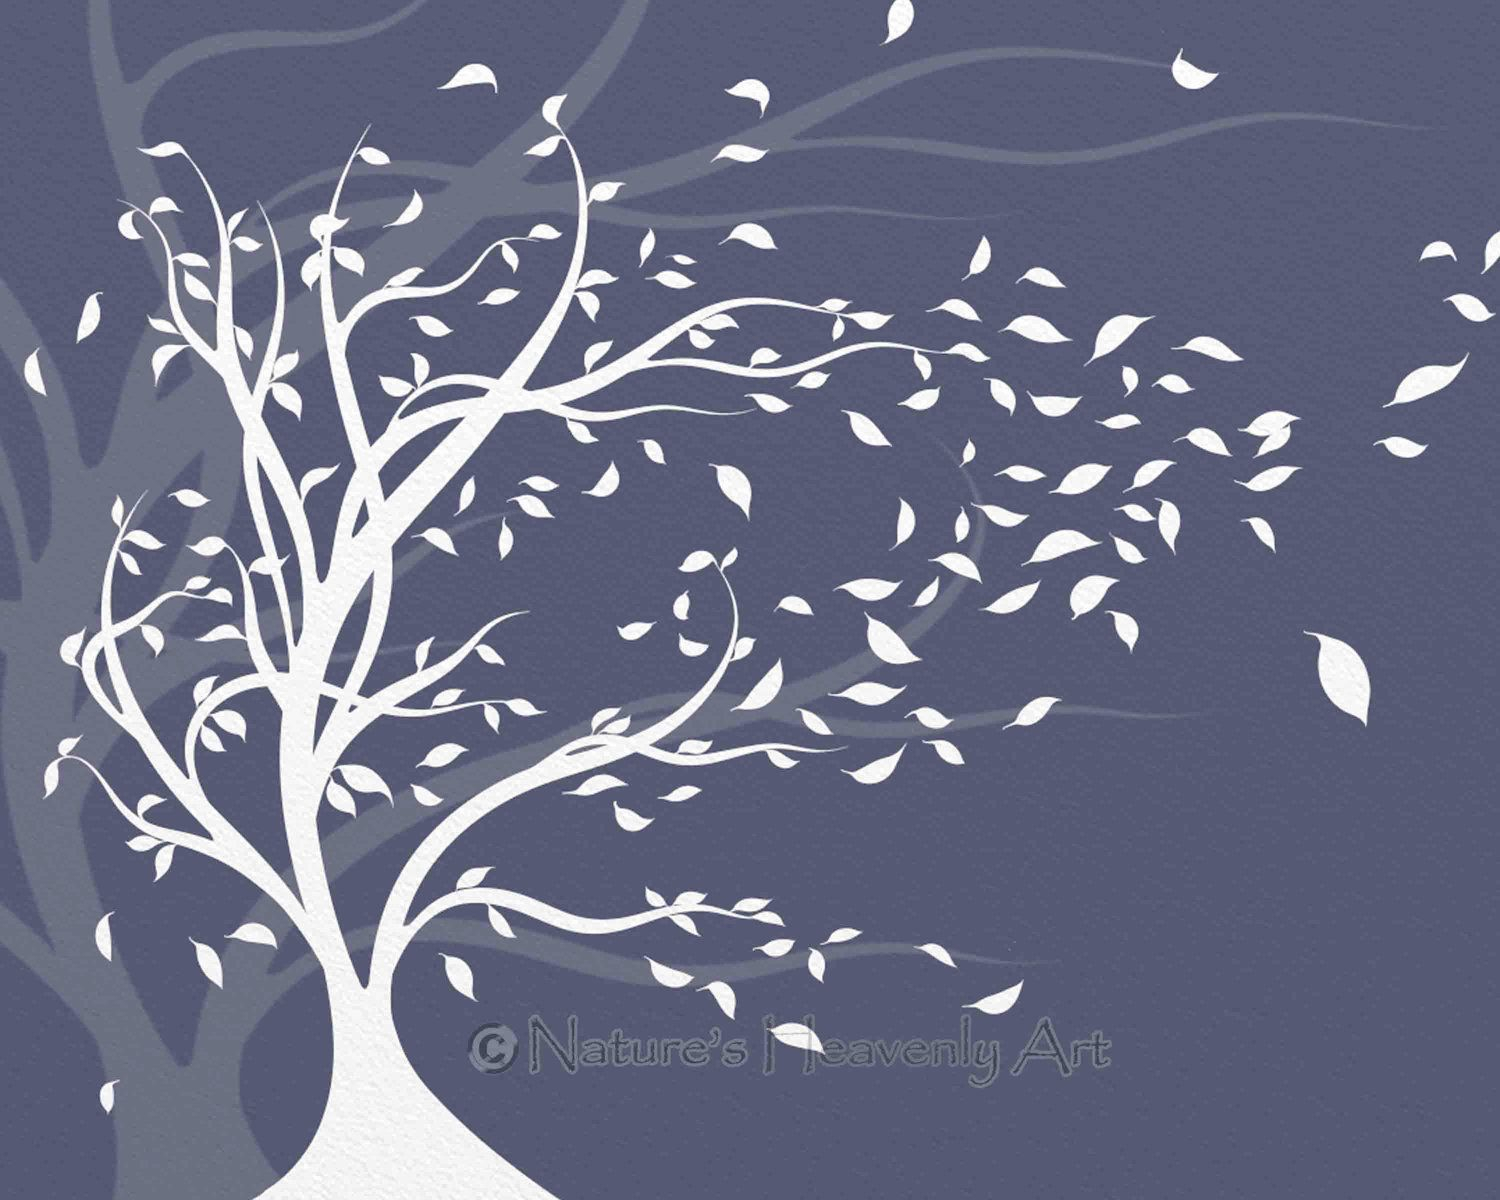 Tree Art Prints | Print, Wind Tree Wall Art, Blowing Leaves Throughout Blowing Leaves Wall Decor (View 12 of 30)